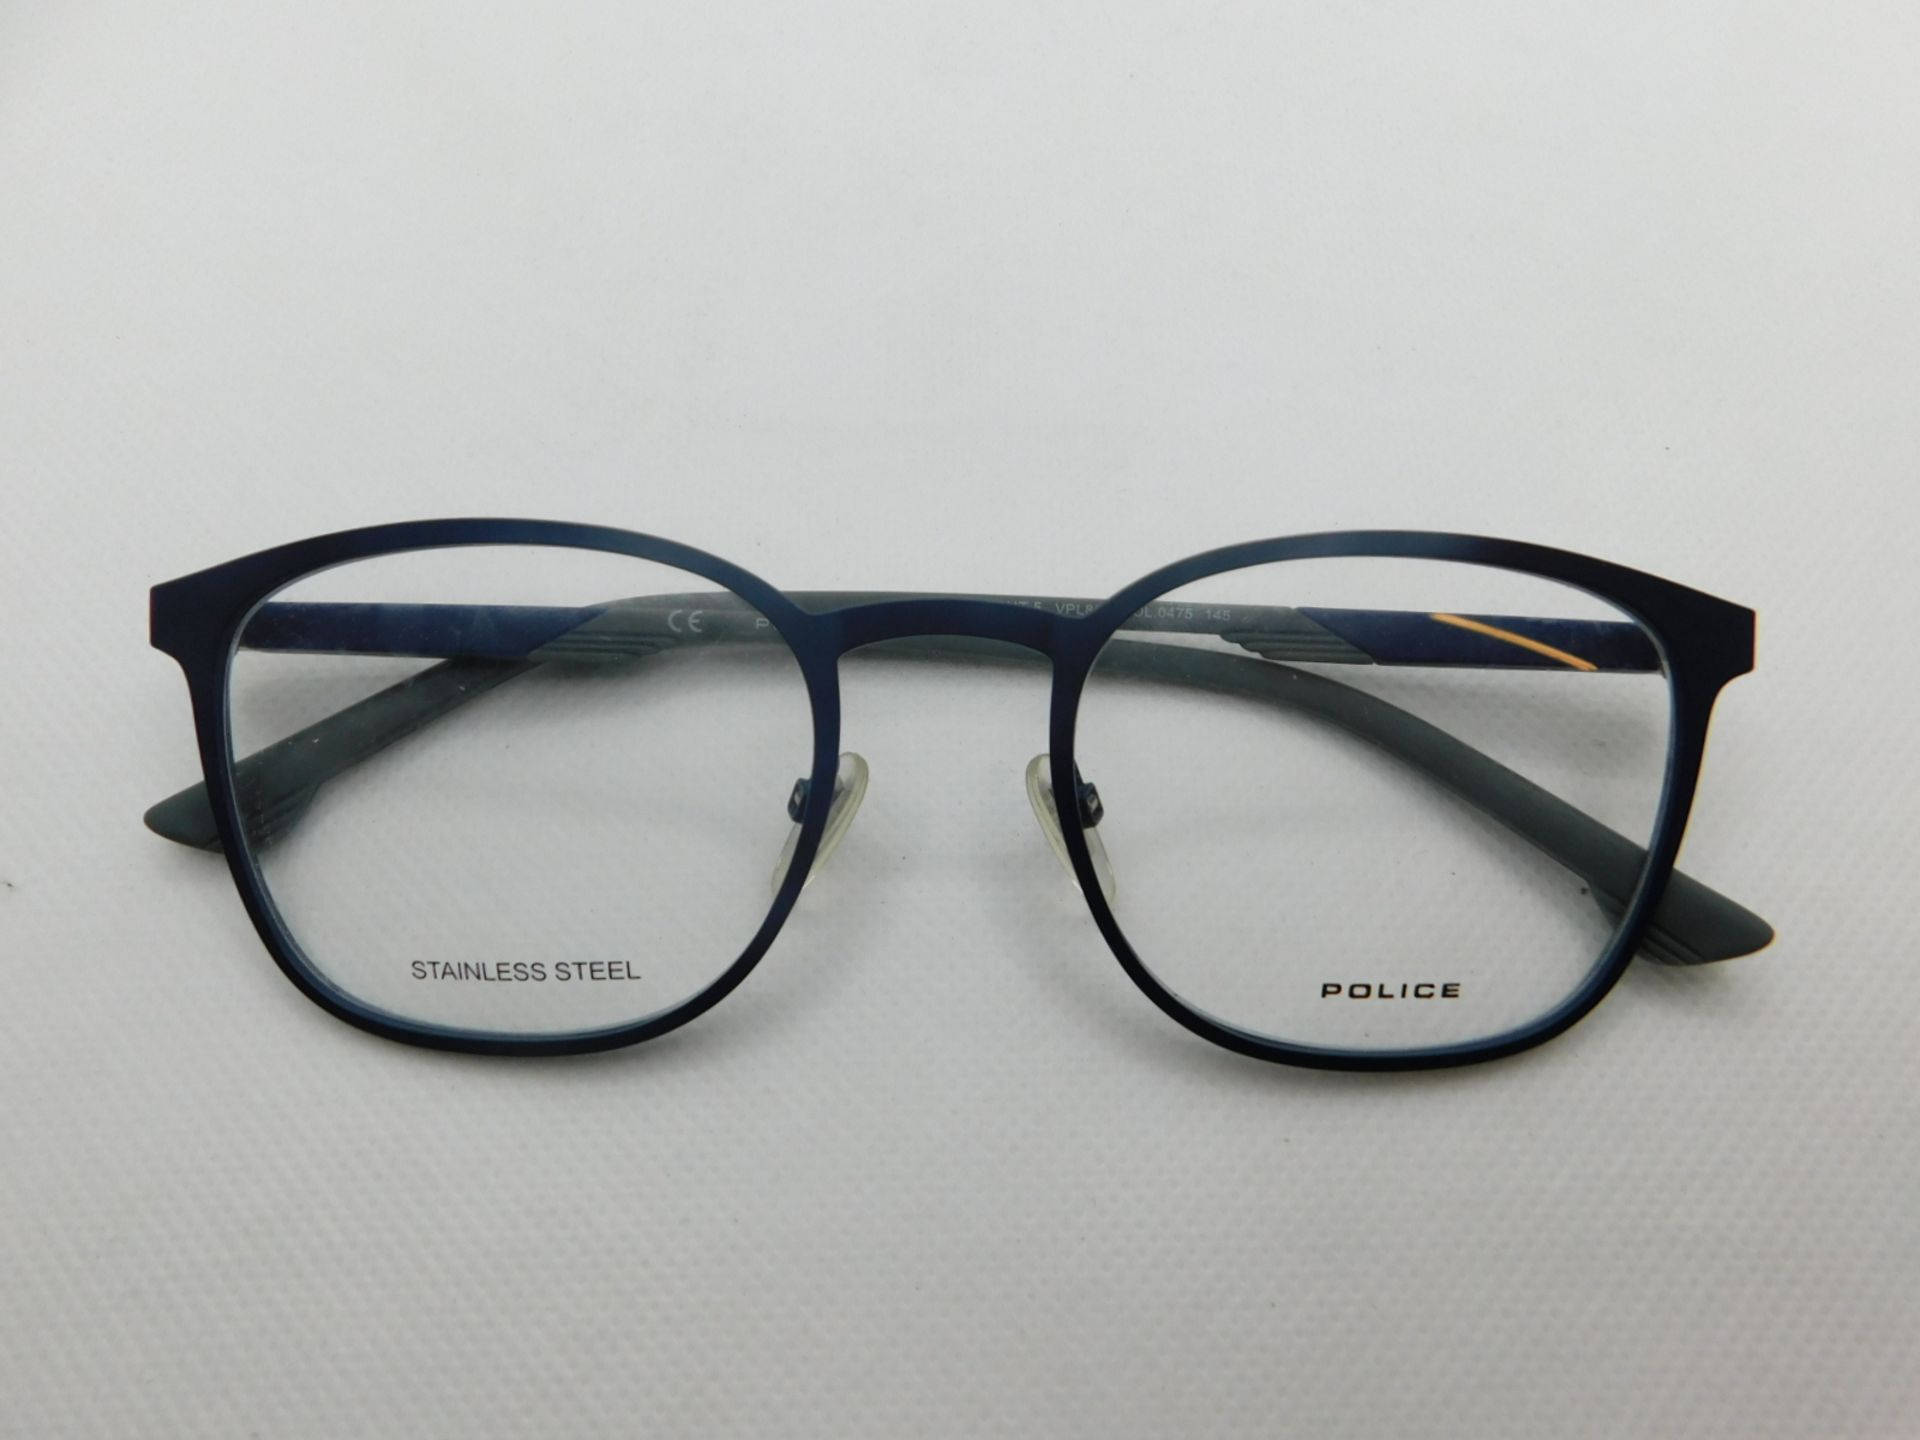 1 PAIR OF POLICE GLASSES FRAME AND CASE MODEL VPL801 RRP £99.99